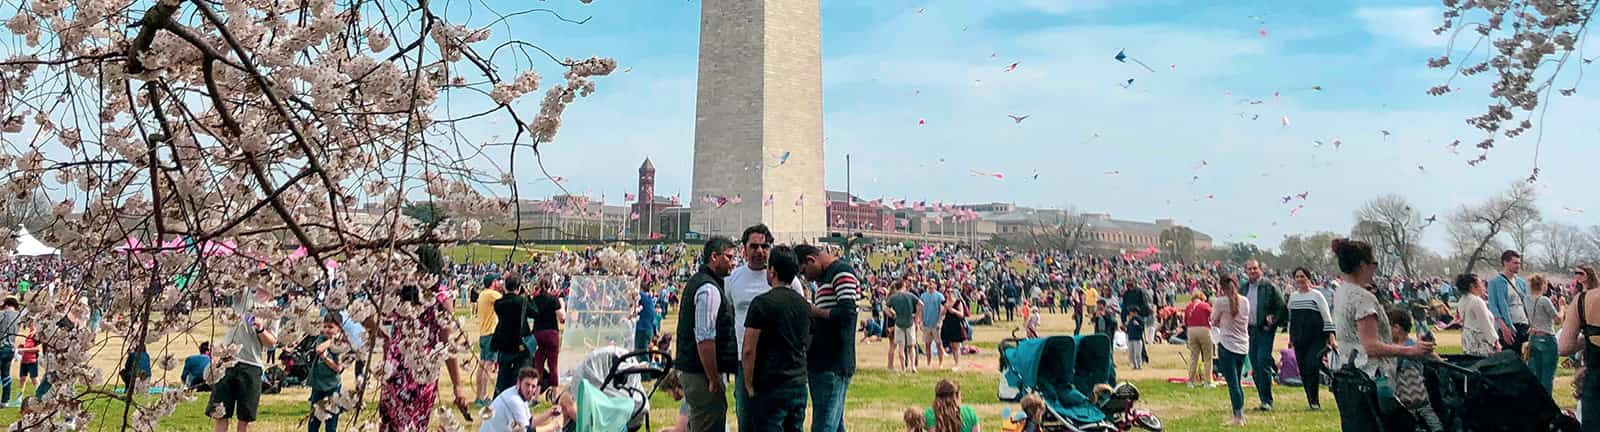 National Mall Events Calendar | Events at Museums ...